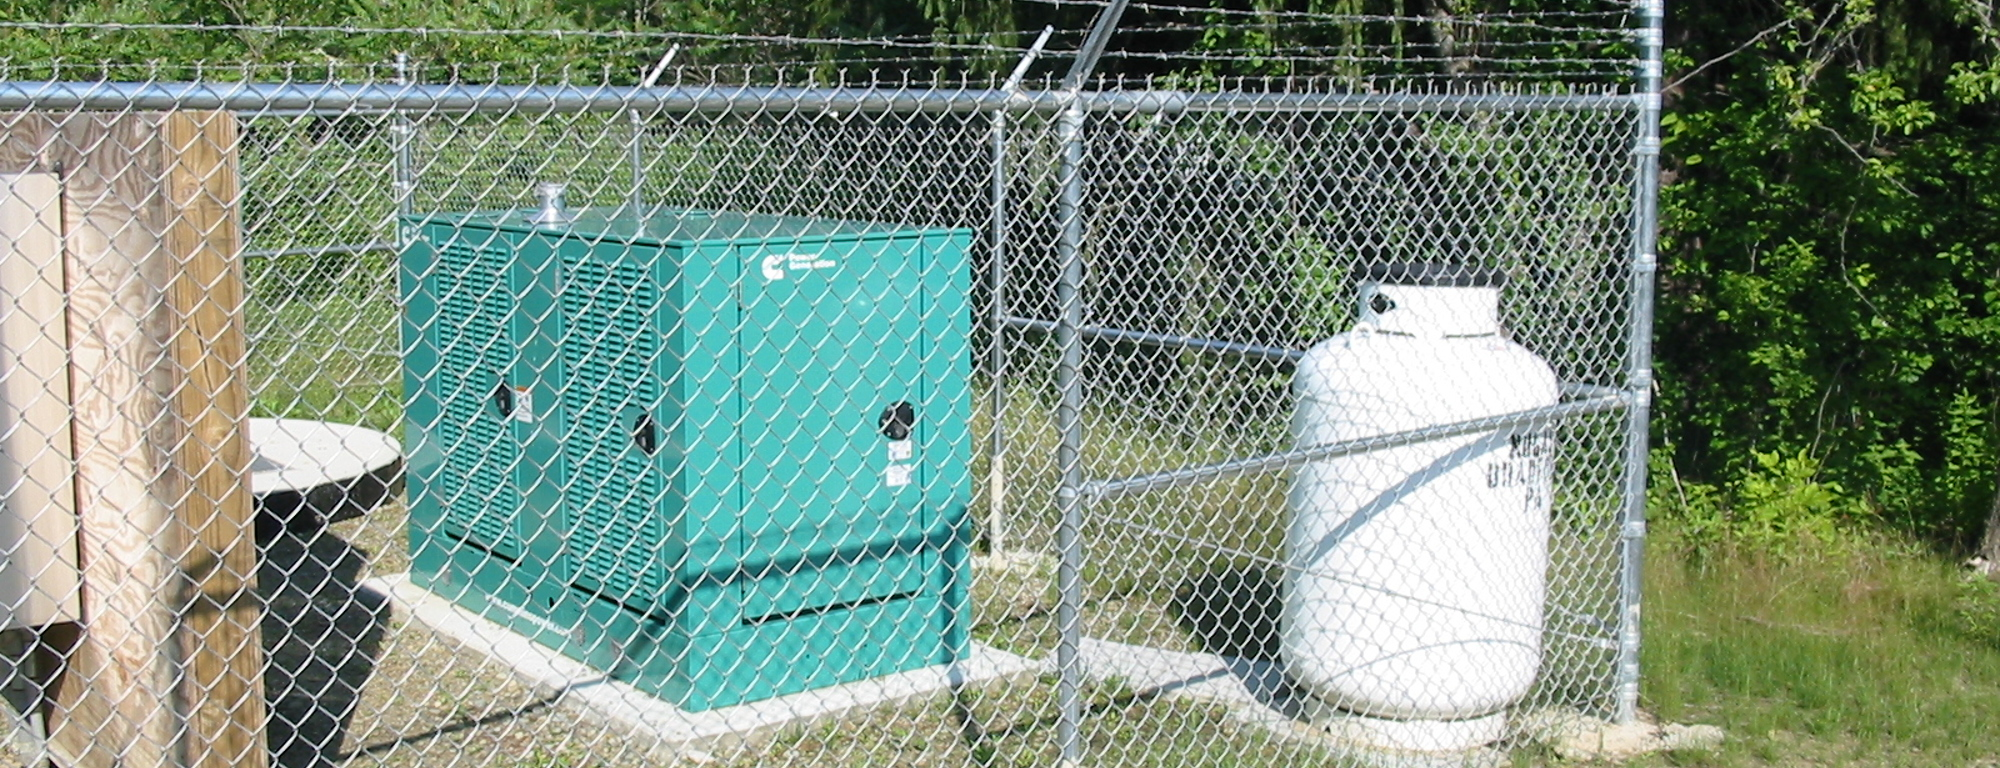 Langley Drive Pump Station